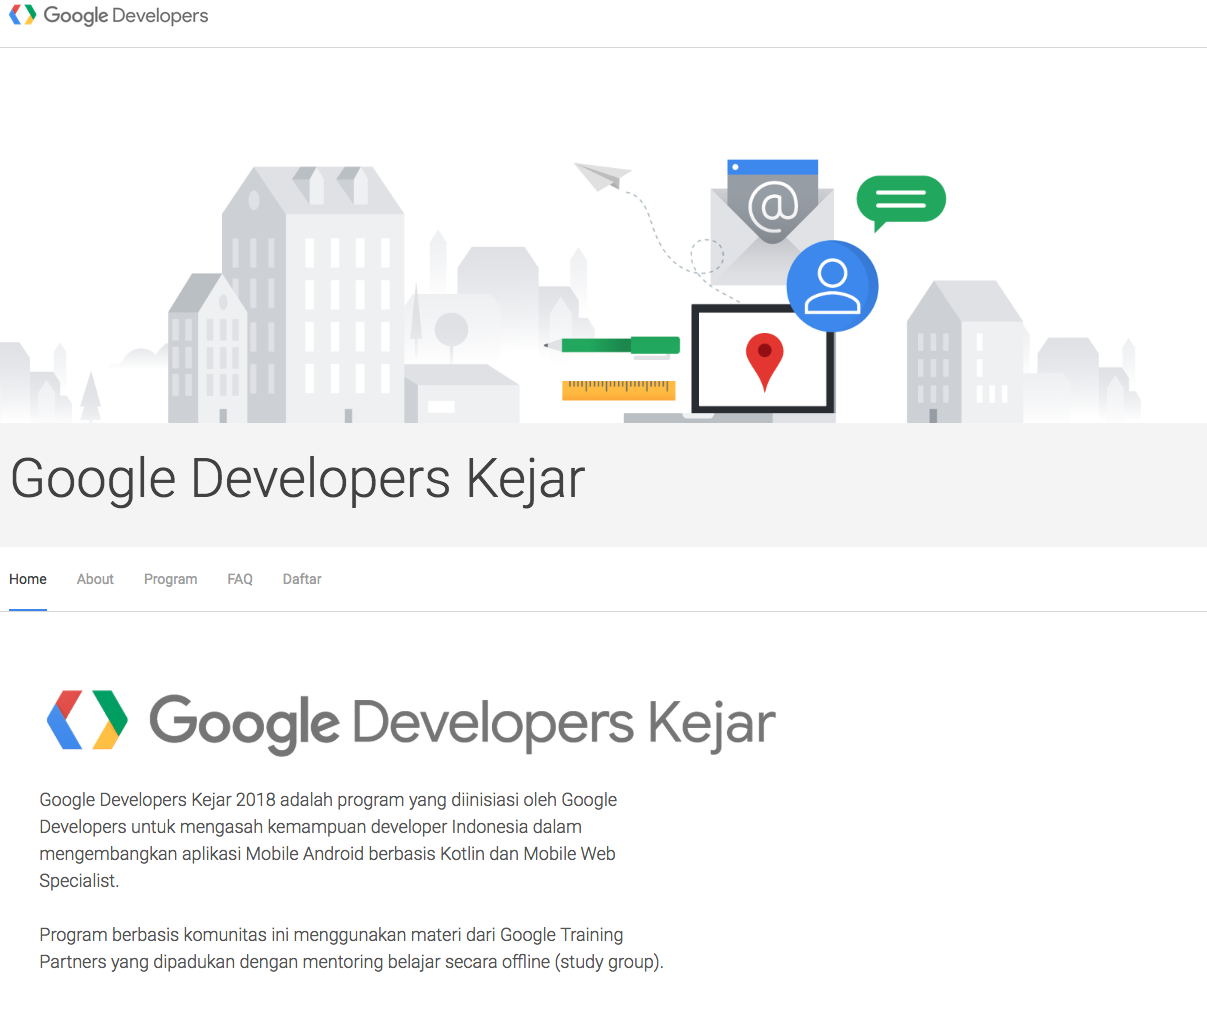 Google Developers Kejar1